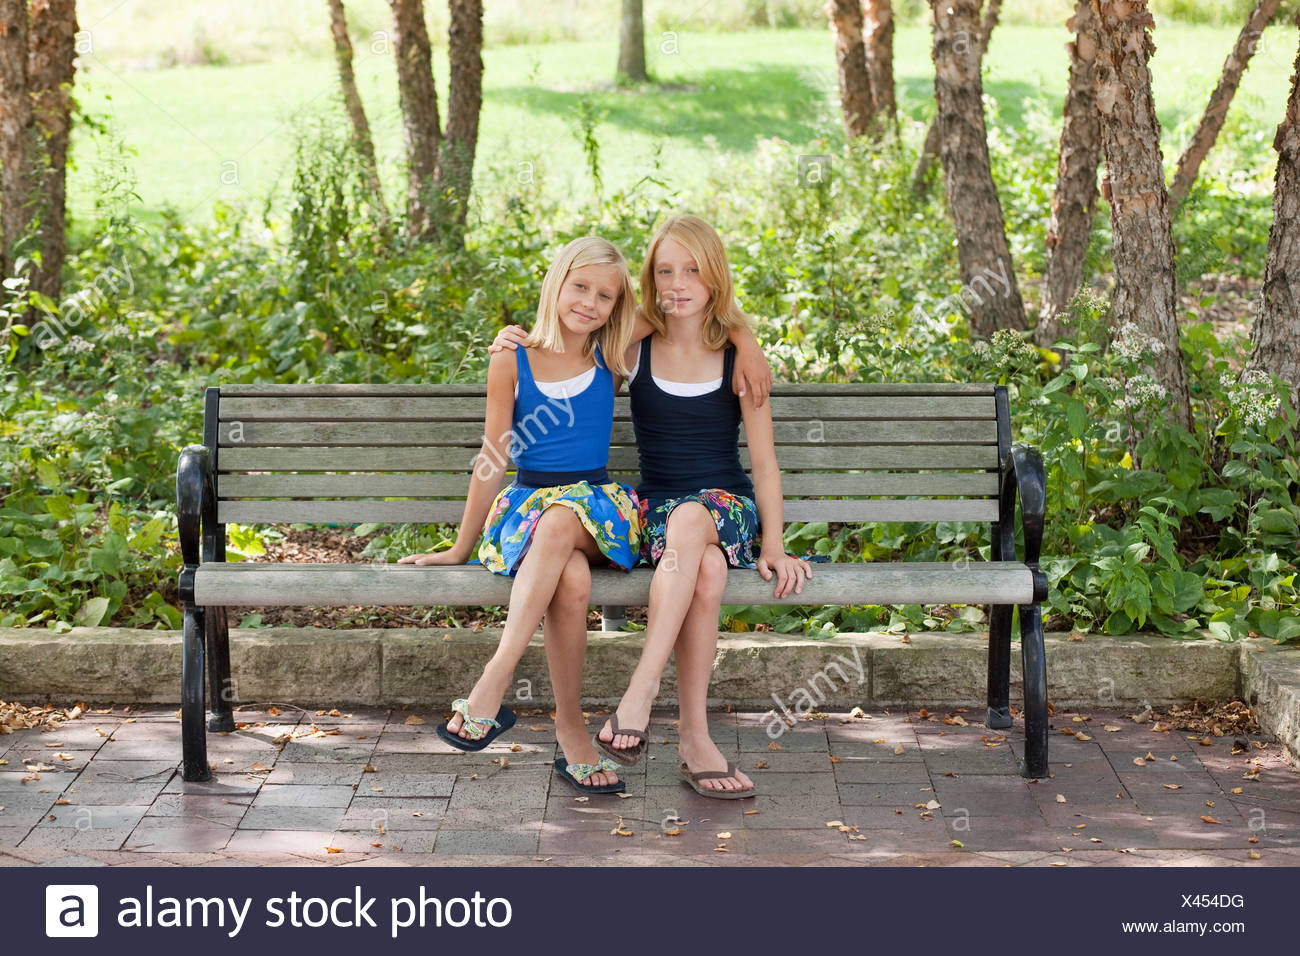 Two Girls legs crossed on a bench - Stock Image